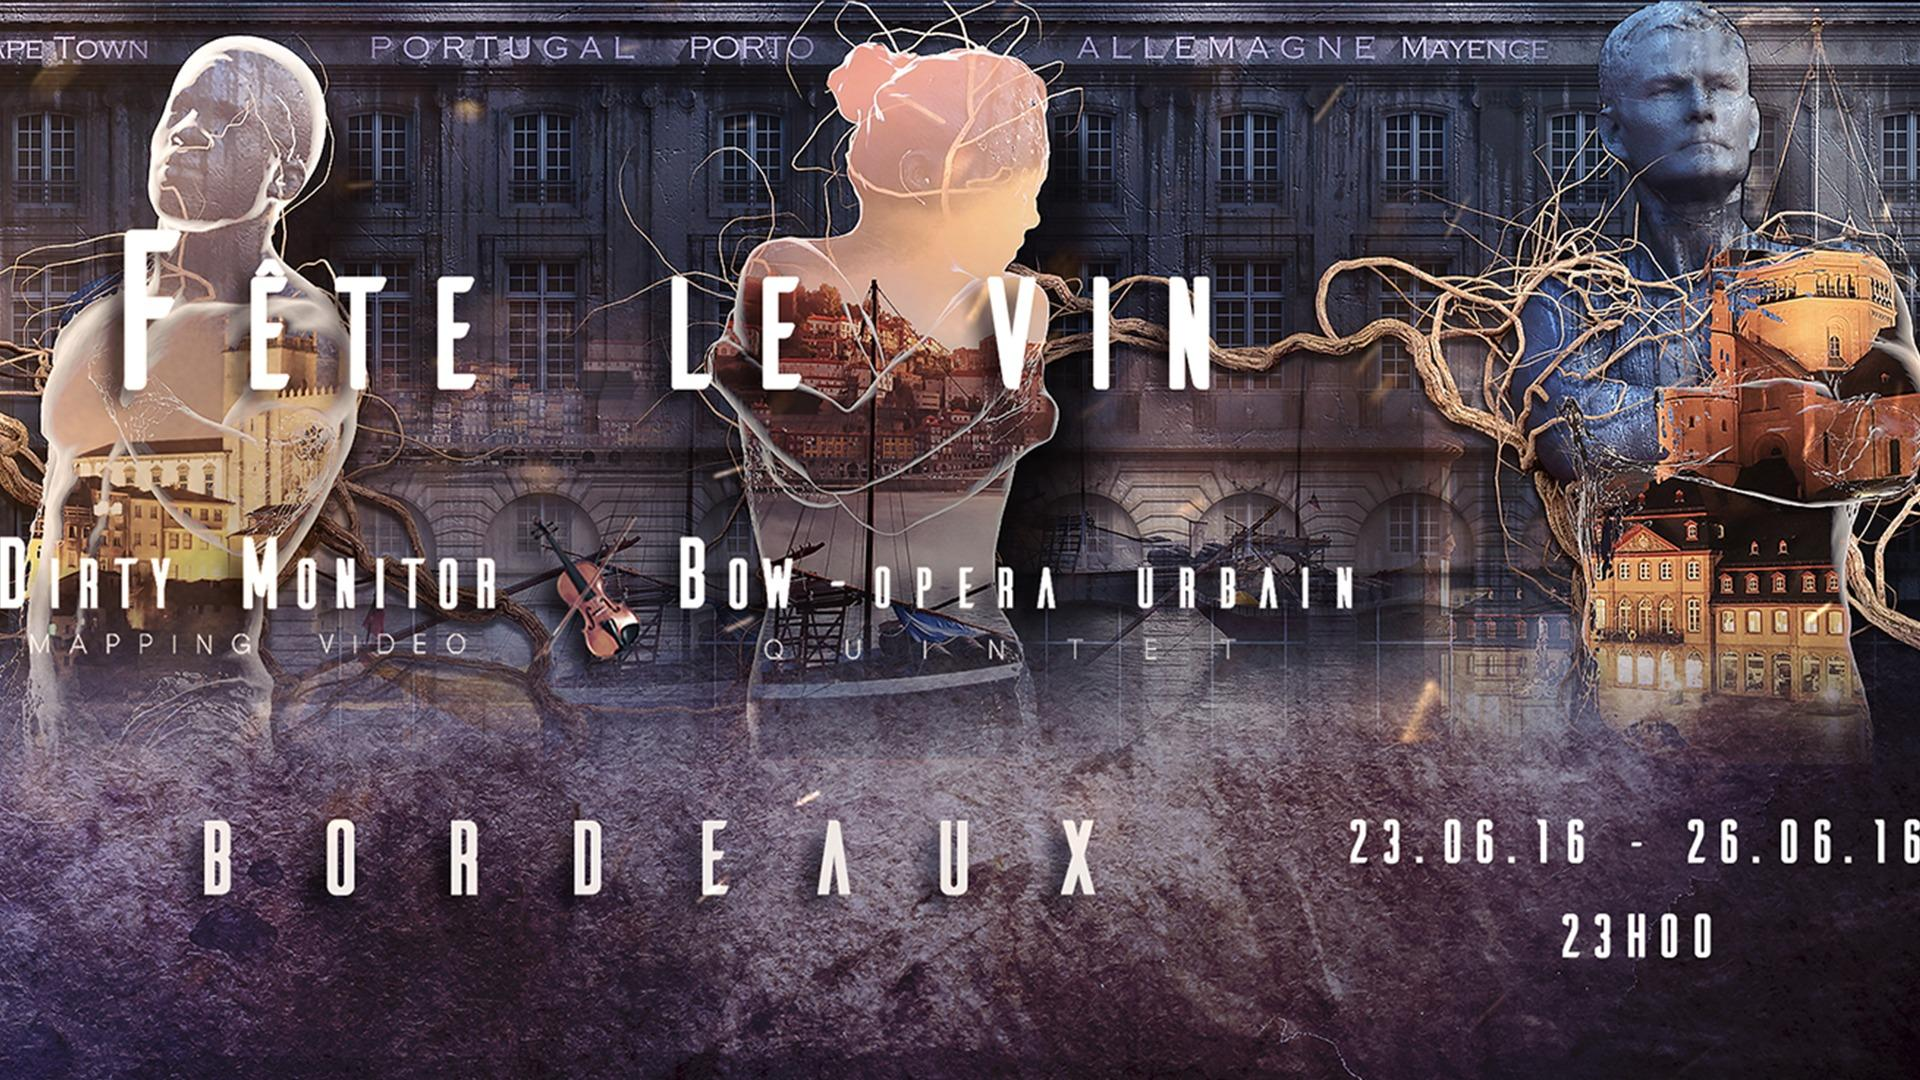 Bordeaux Wine Festival 2016